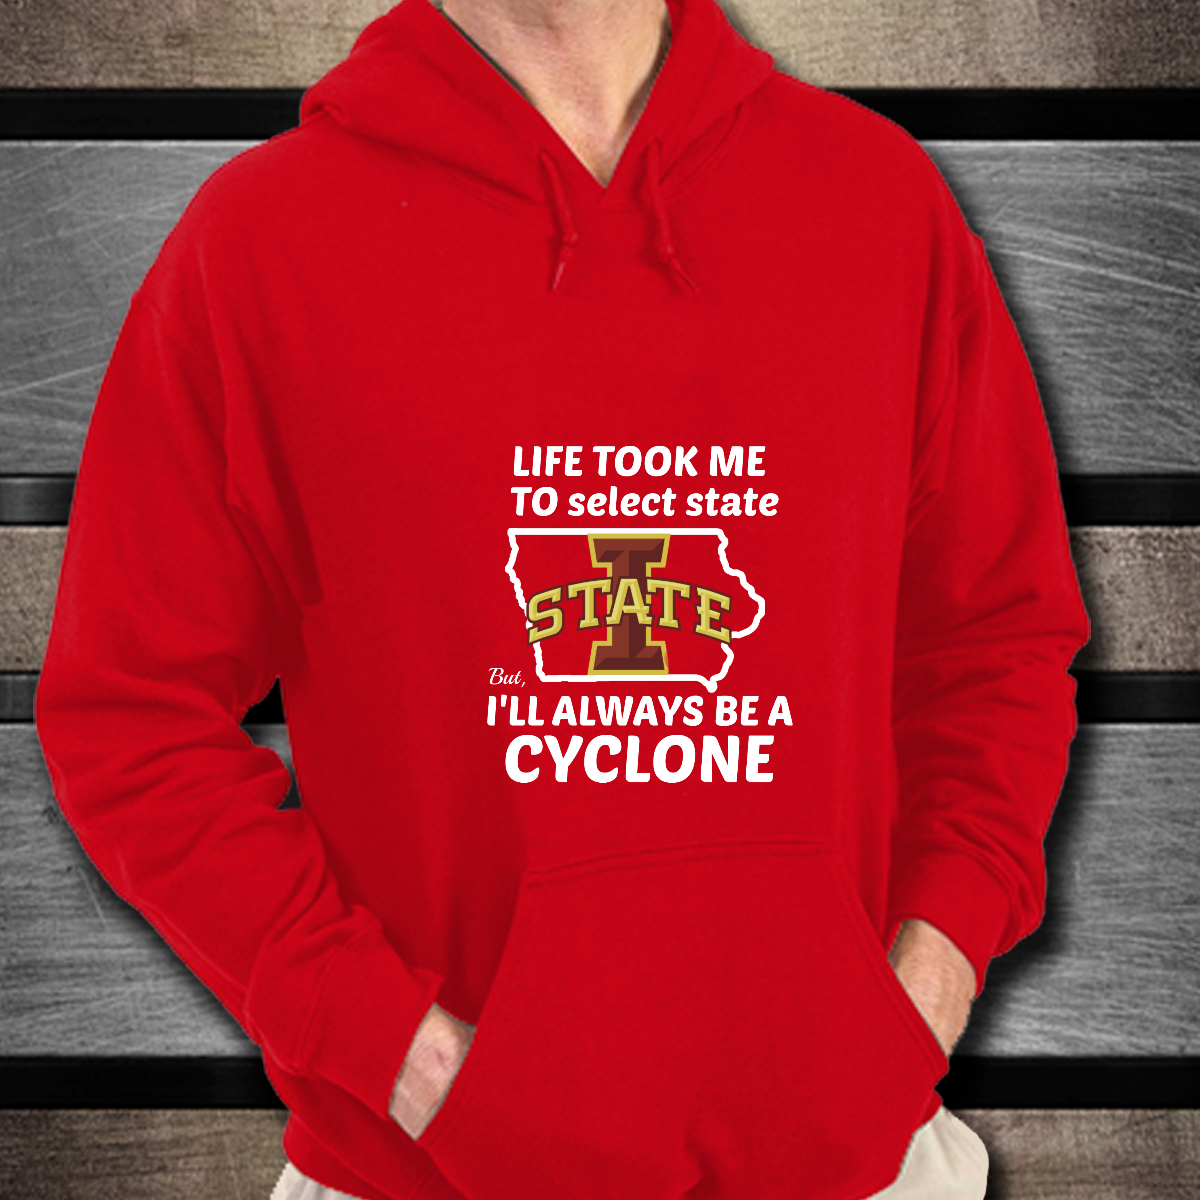 d9d8b885064 Iowa state cyclones life took me to (select any state) but, i'll ...